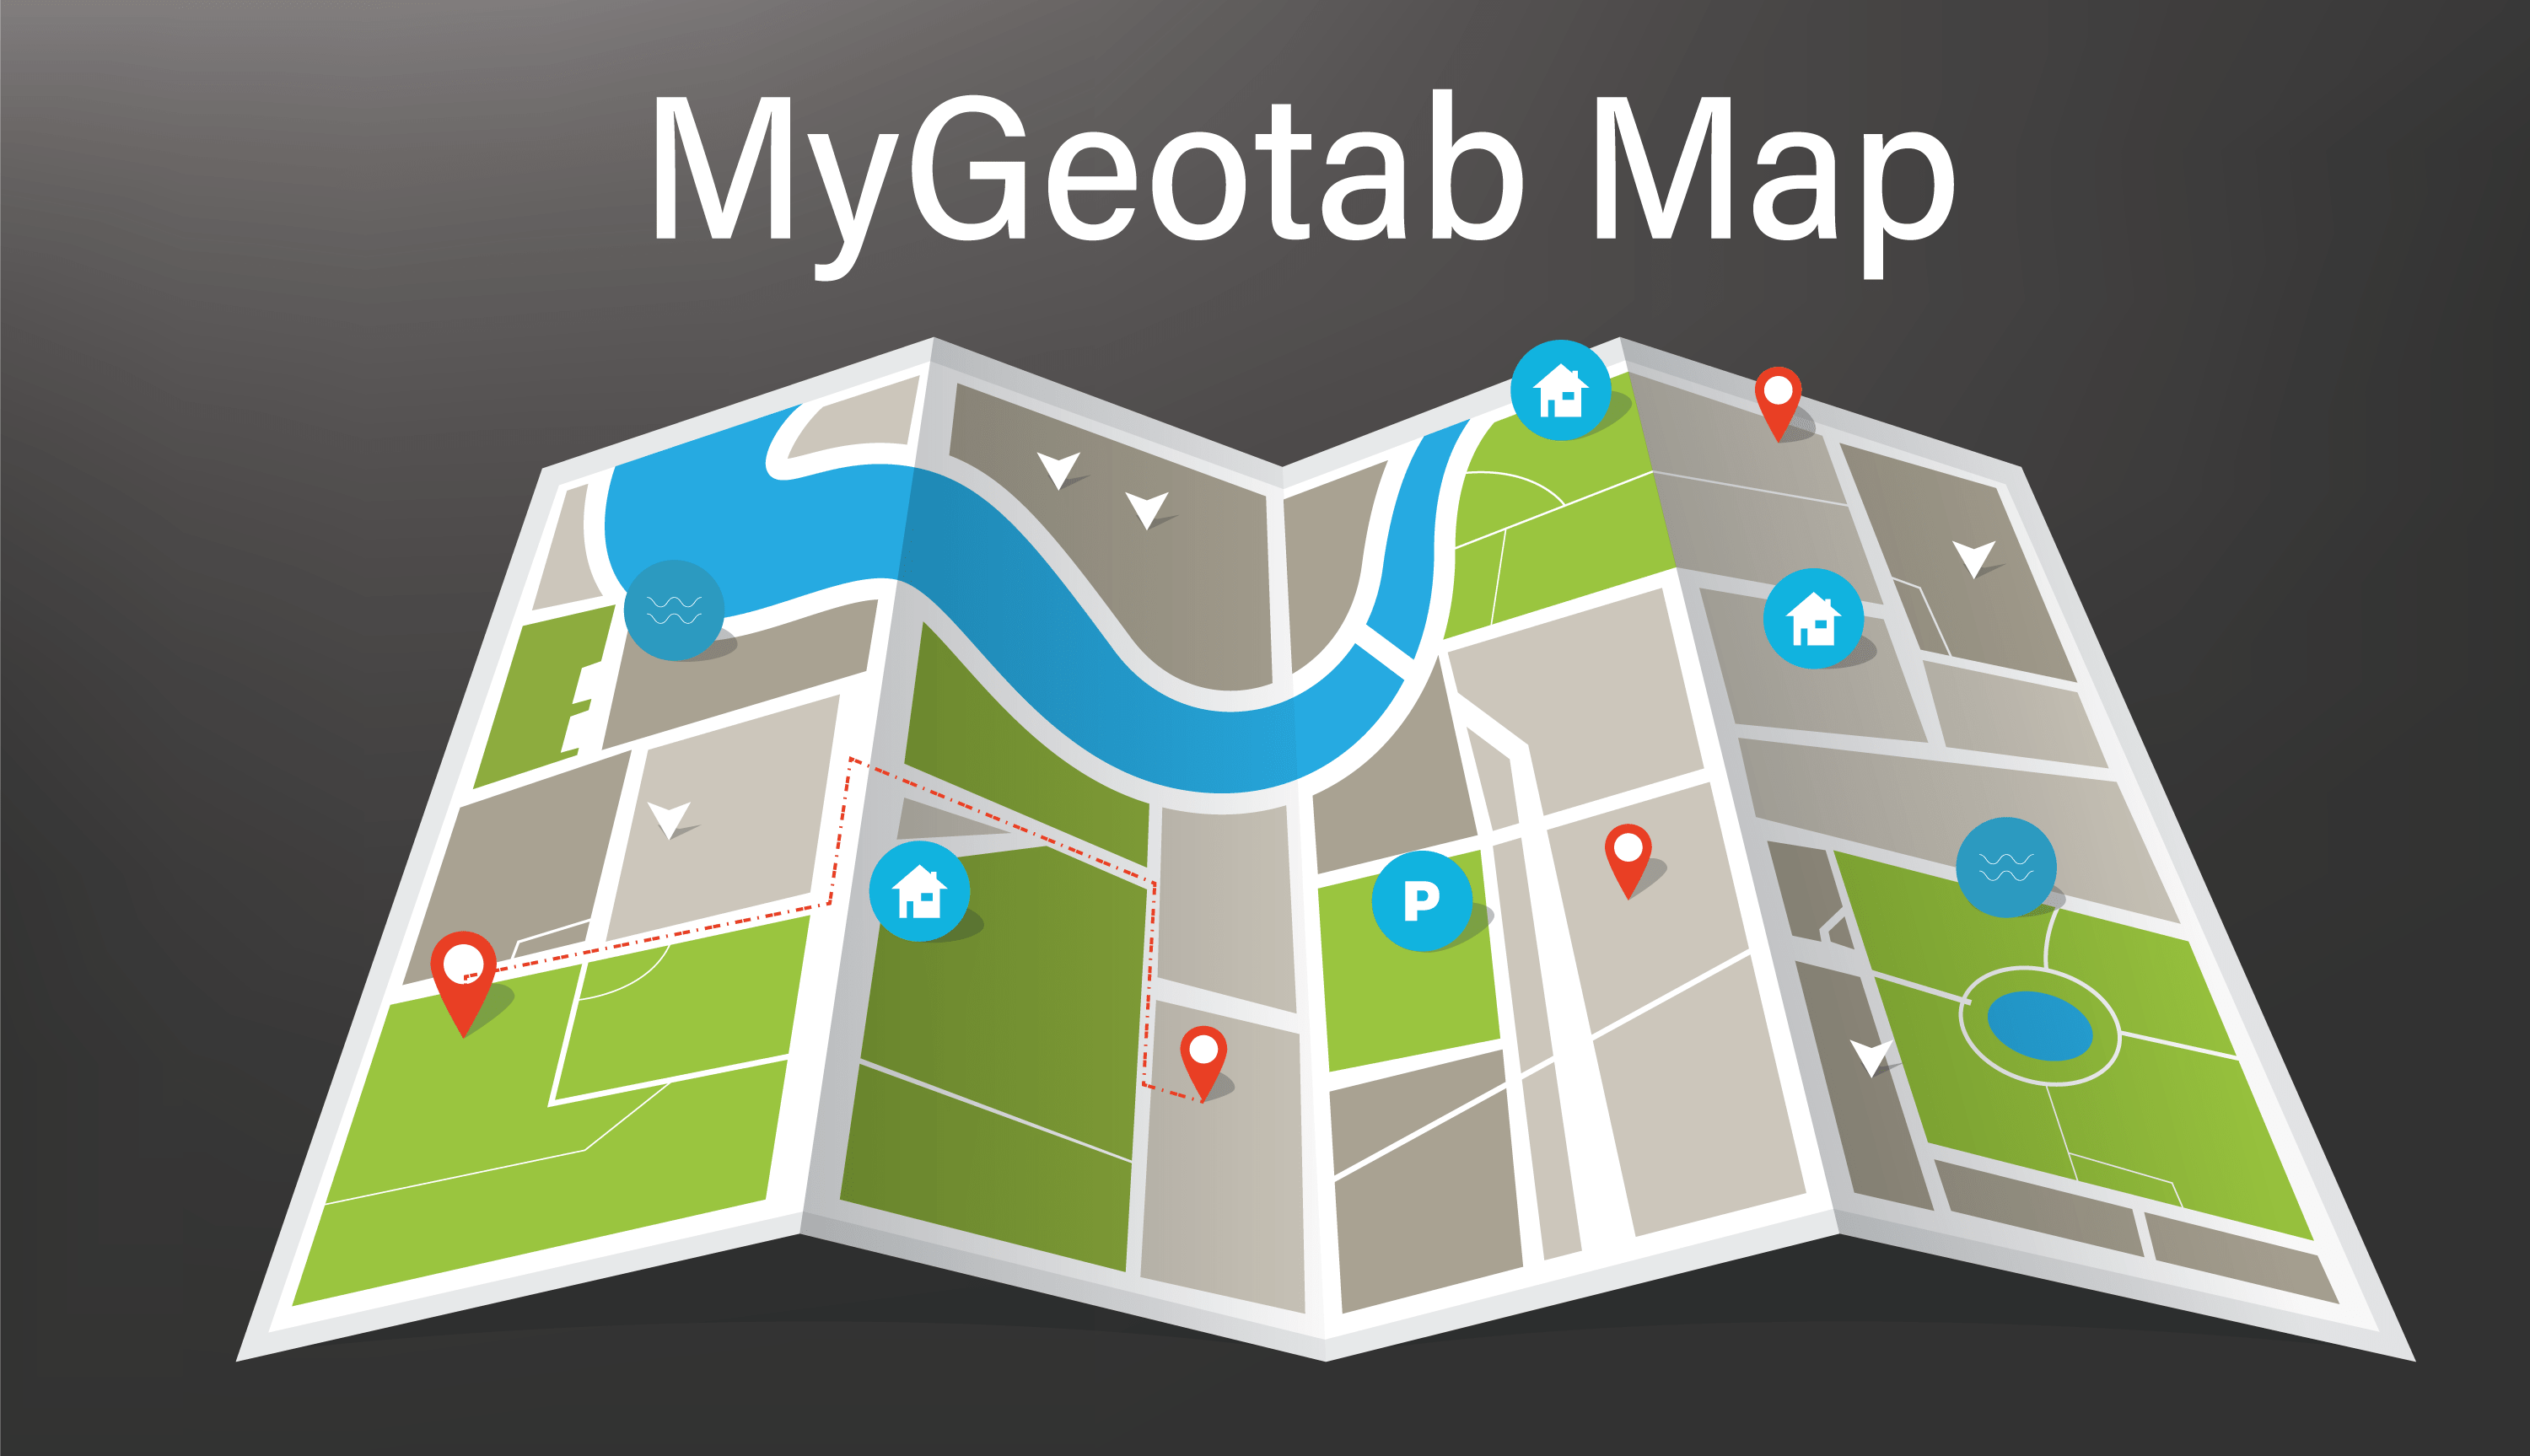 Using the MyGeotab Map to Benefit your Fleet